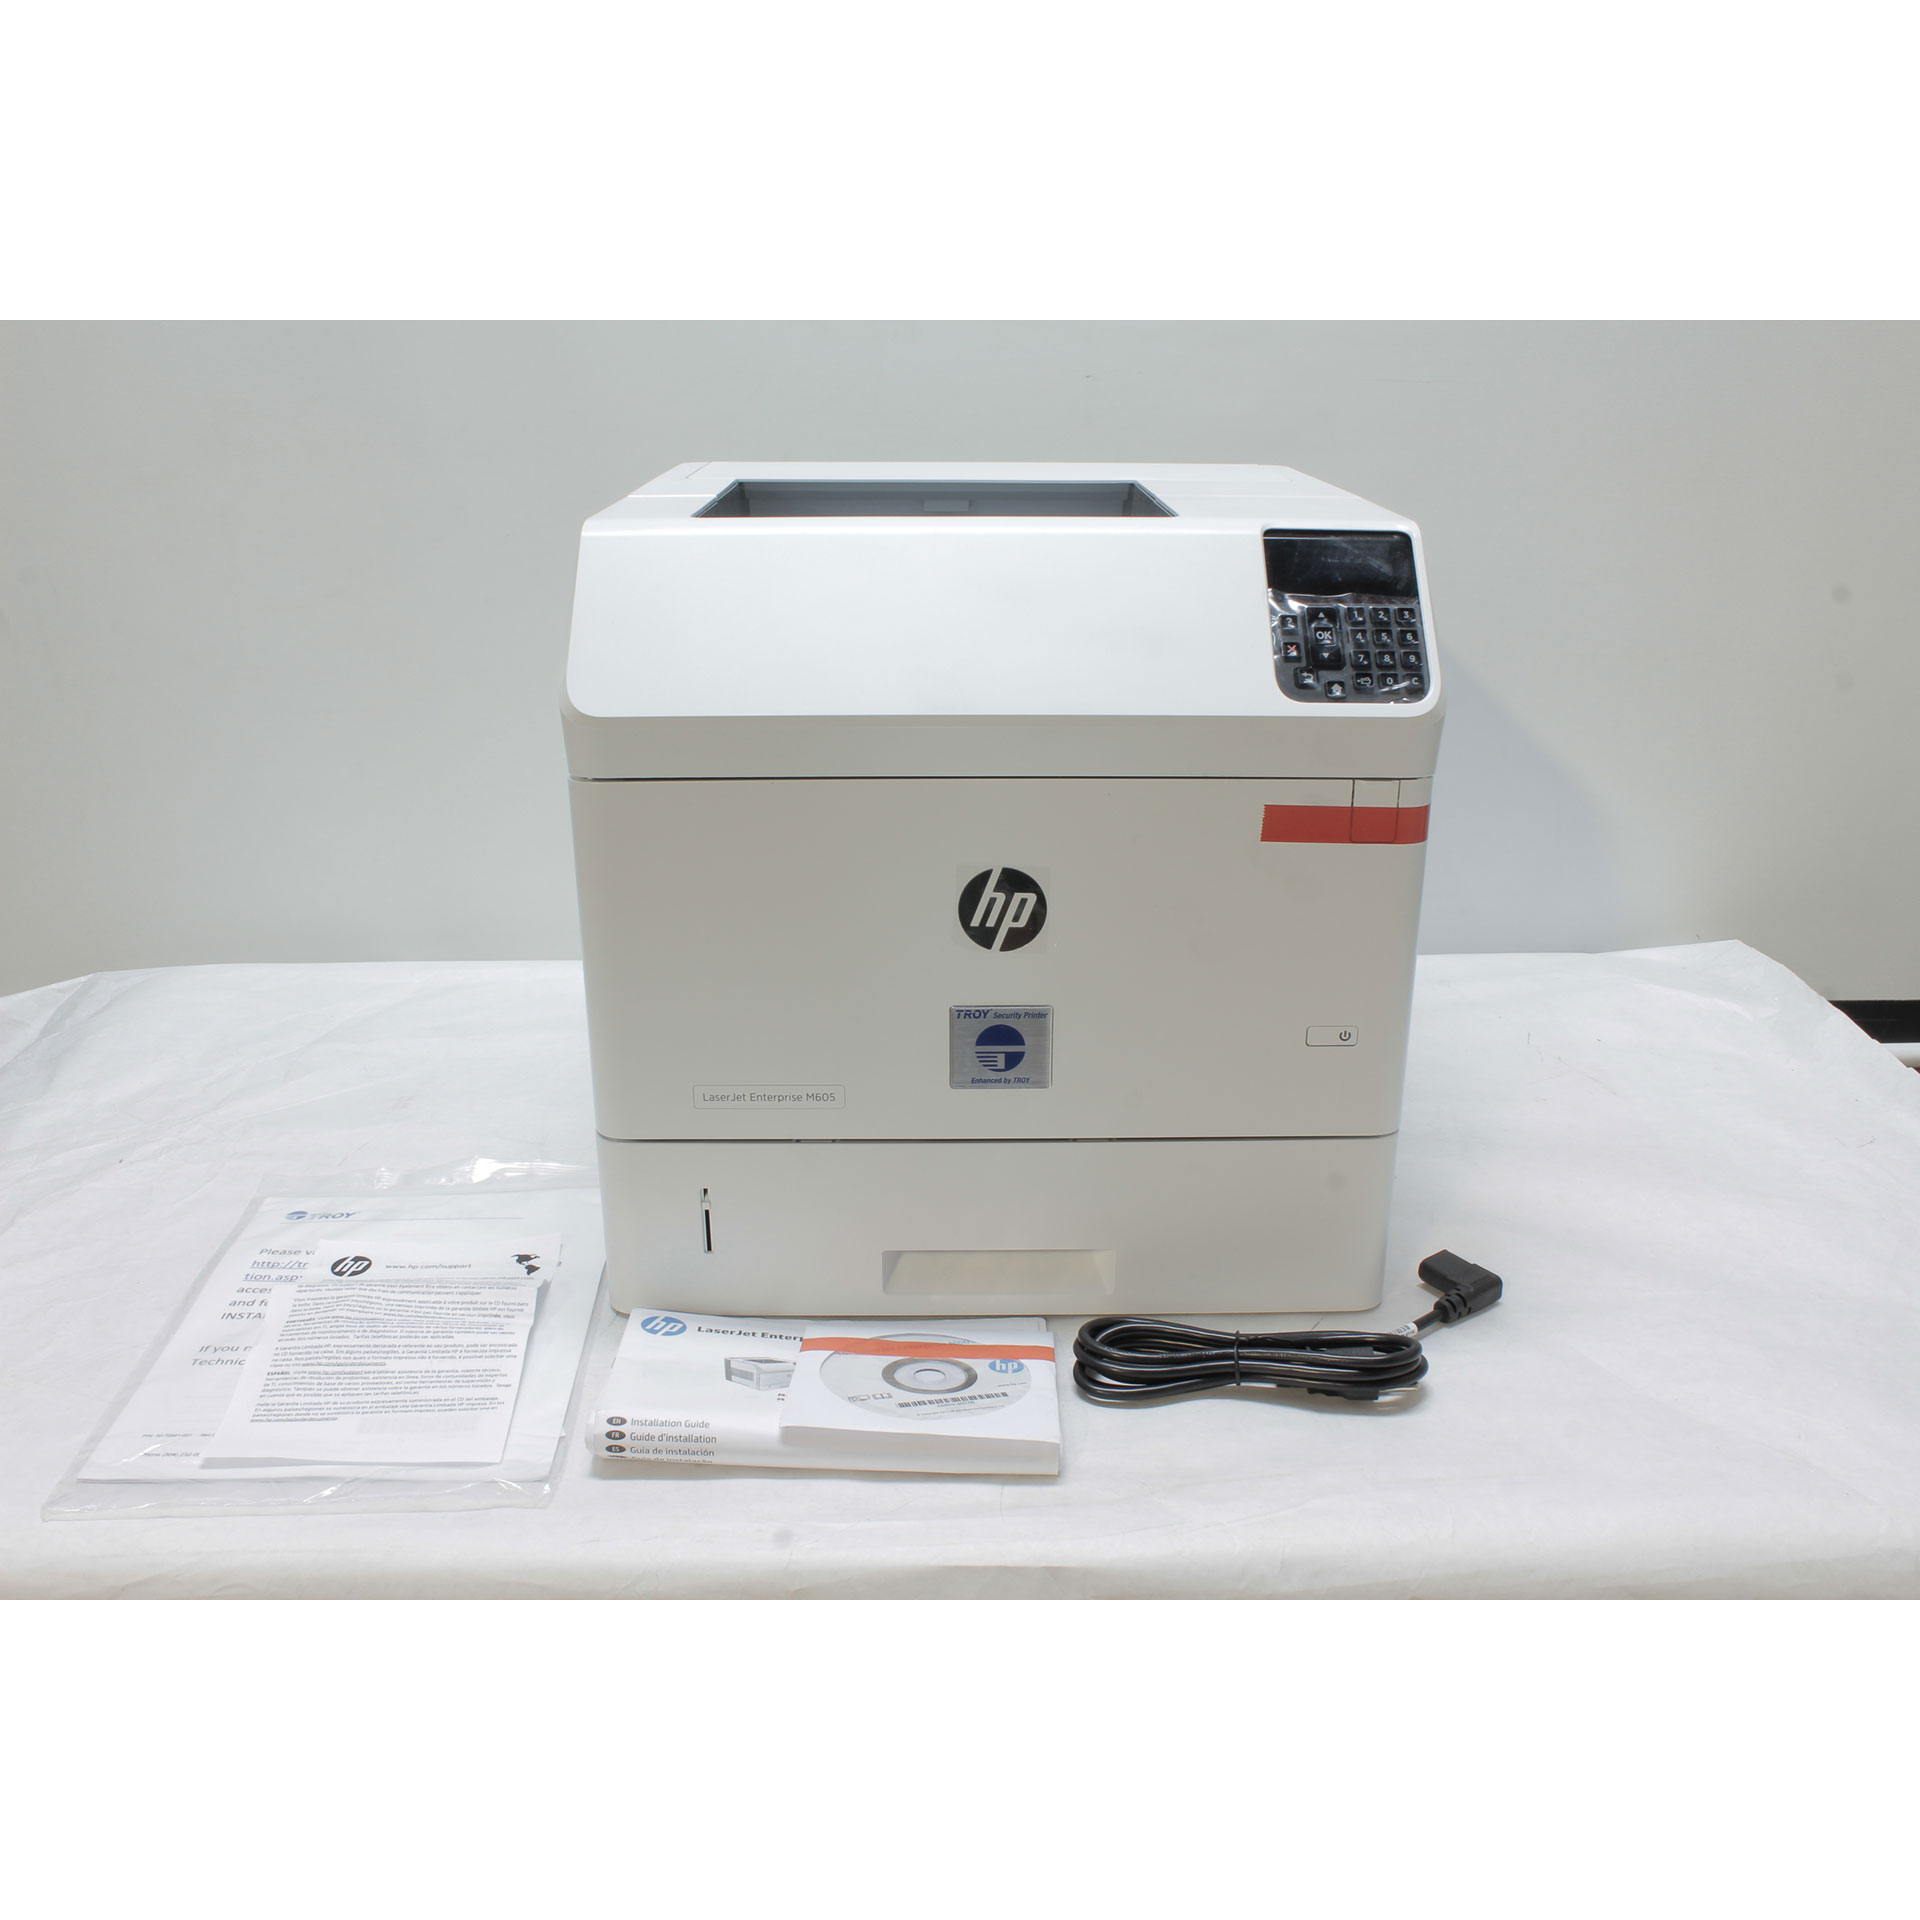 HP TROY M605n Secure DXi Monochrome Laser Printer 101-05020-101